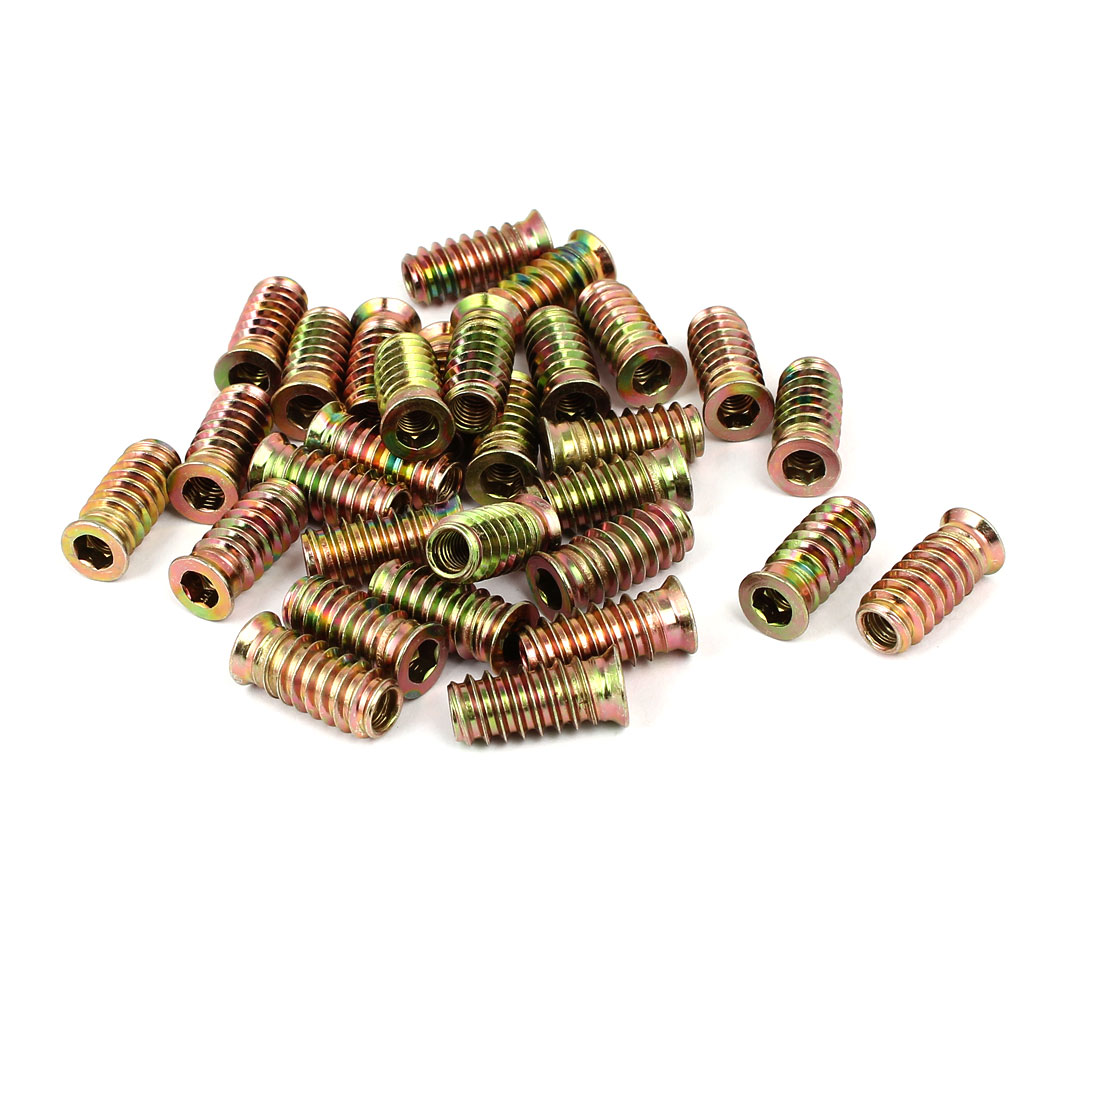 6mmx25mm Insertion Meuble bois hex prise acier carbone Interface E-écrou 30pcs - image 3 de 3